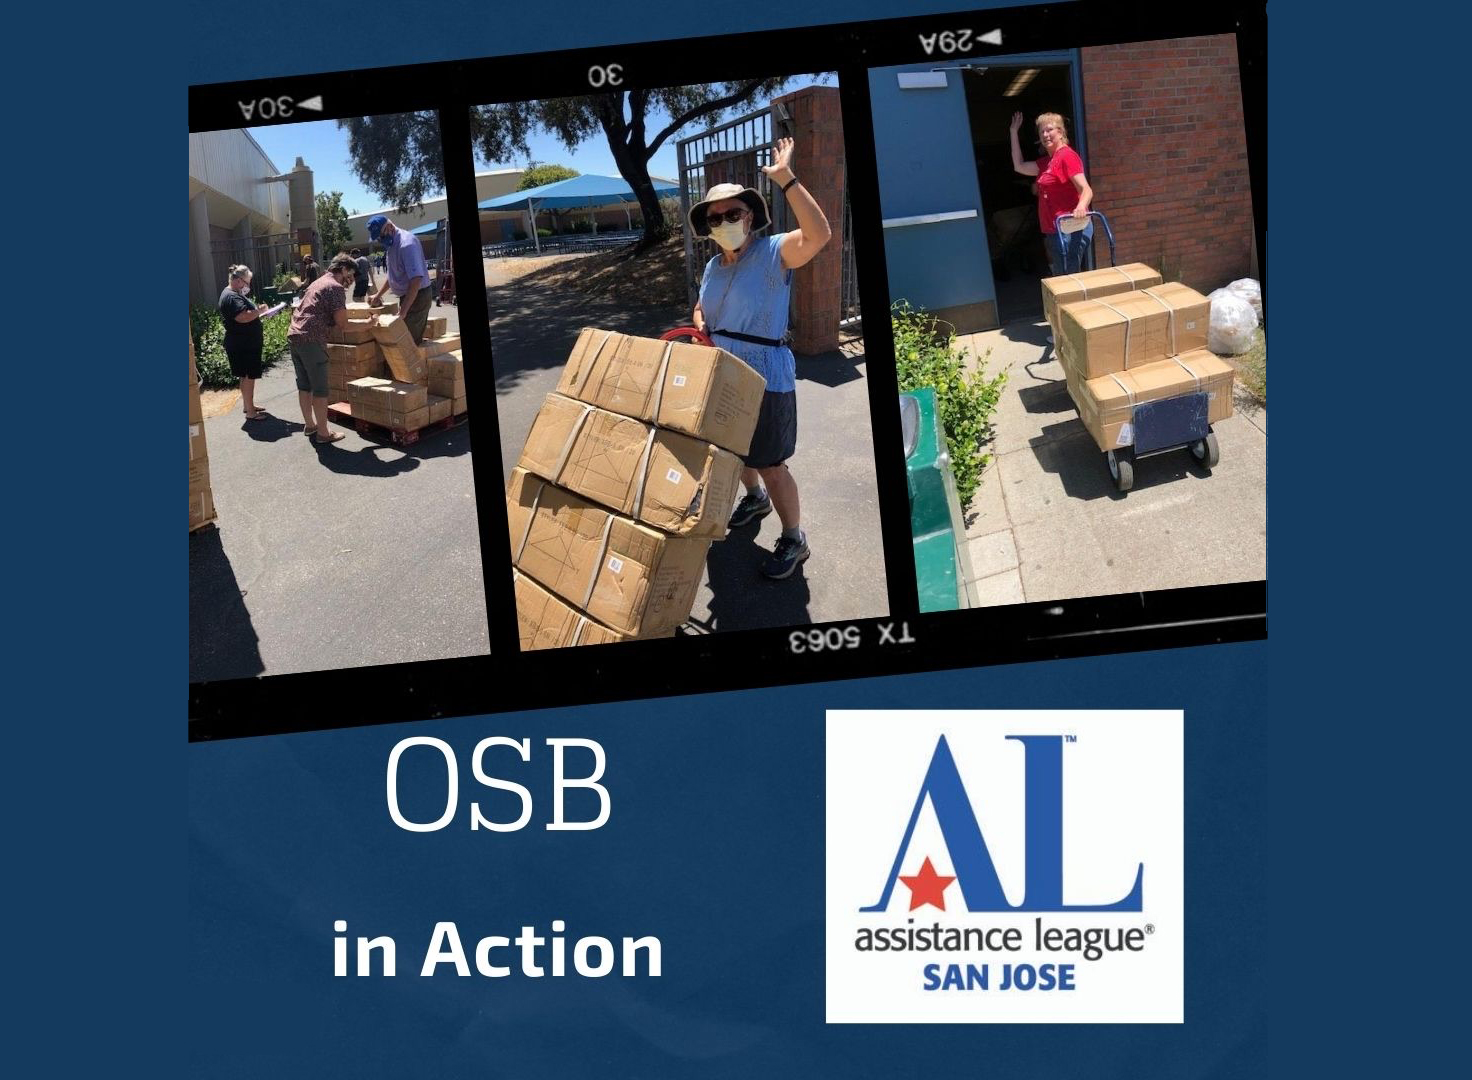 OSB volunteers unloading boxes from the truck